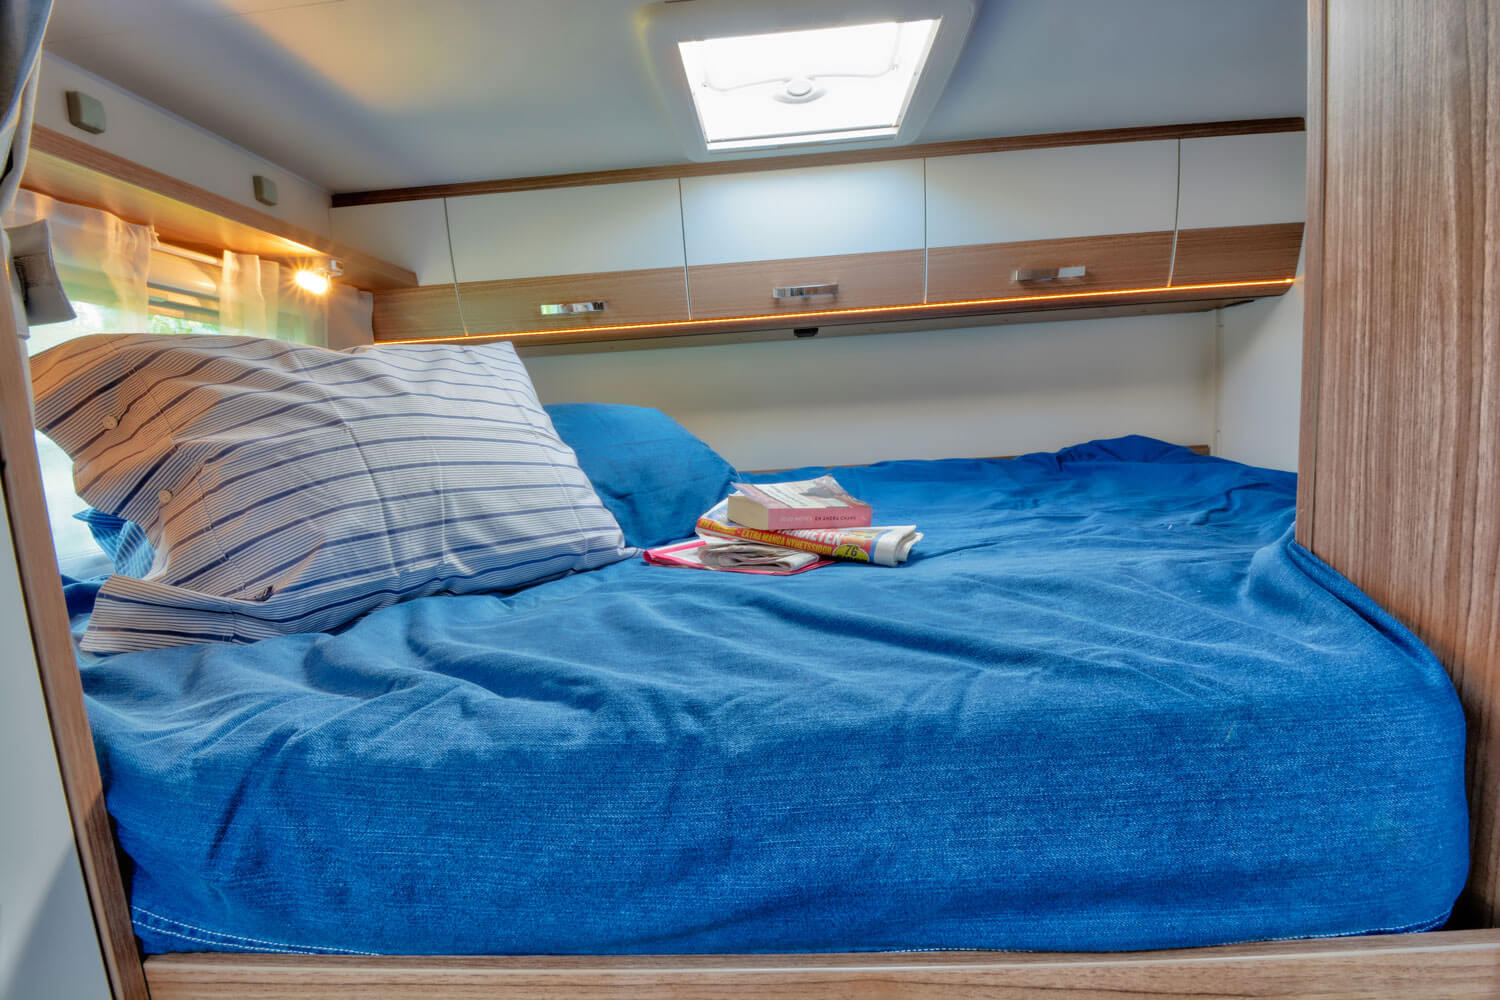 SkandiTrip family luxury motorhome doublebed in the back of the vehicle